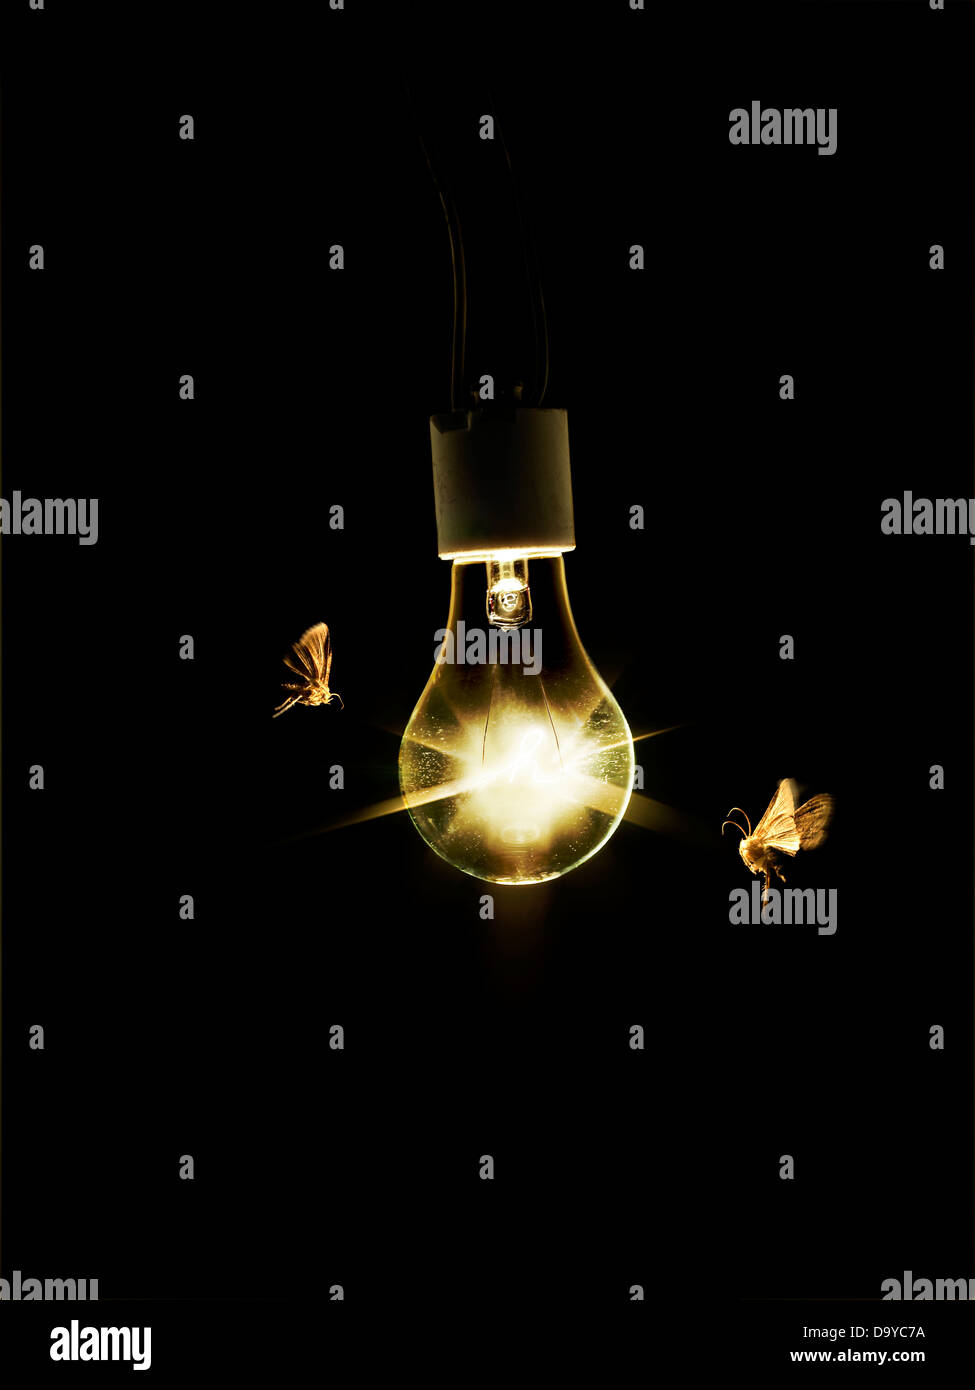 Light Bulb with Moths - Stock Image